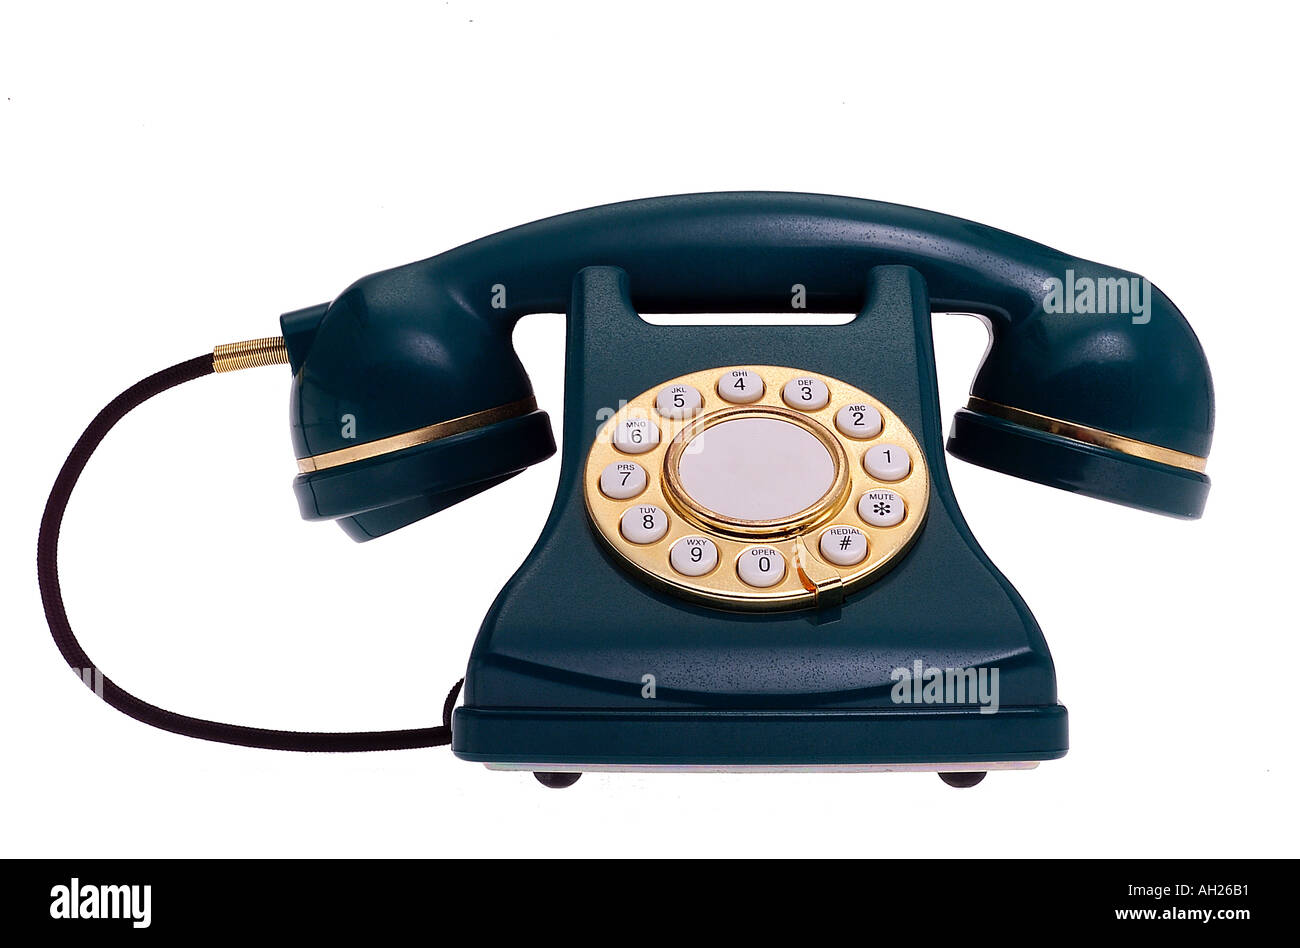 replica green and gold telephone silhouetted on white background Stock Photo